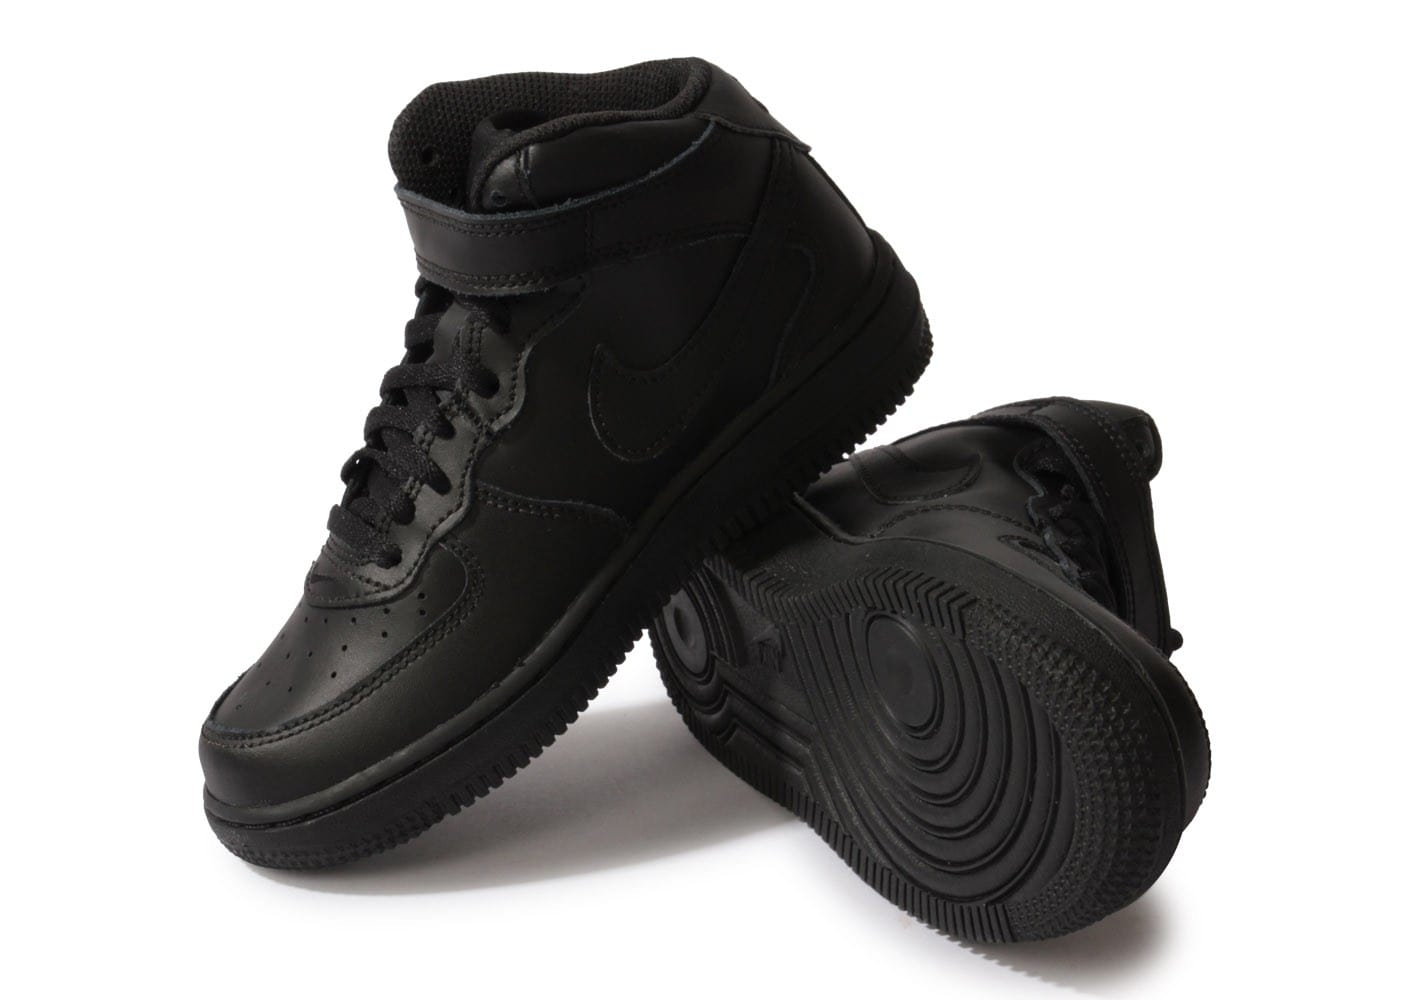 premium selection faaba 80f70 Noire Chausport 1 Air Chaussures Mid Nike Force Enfant wNn8yvm0O